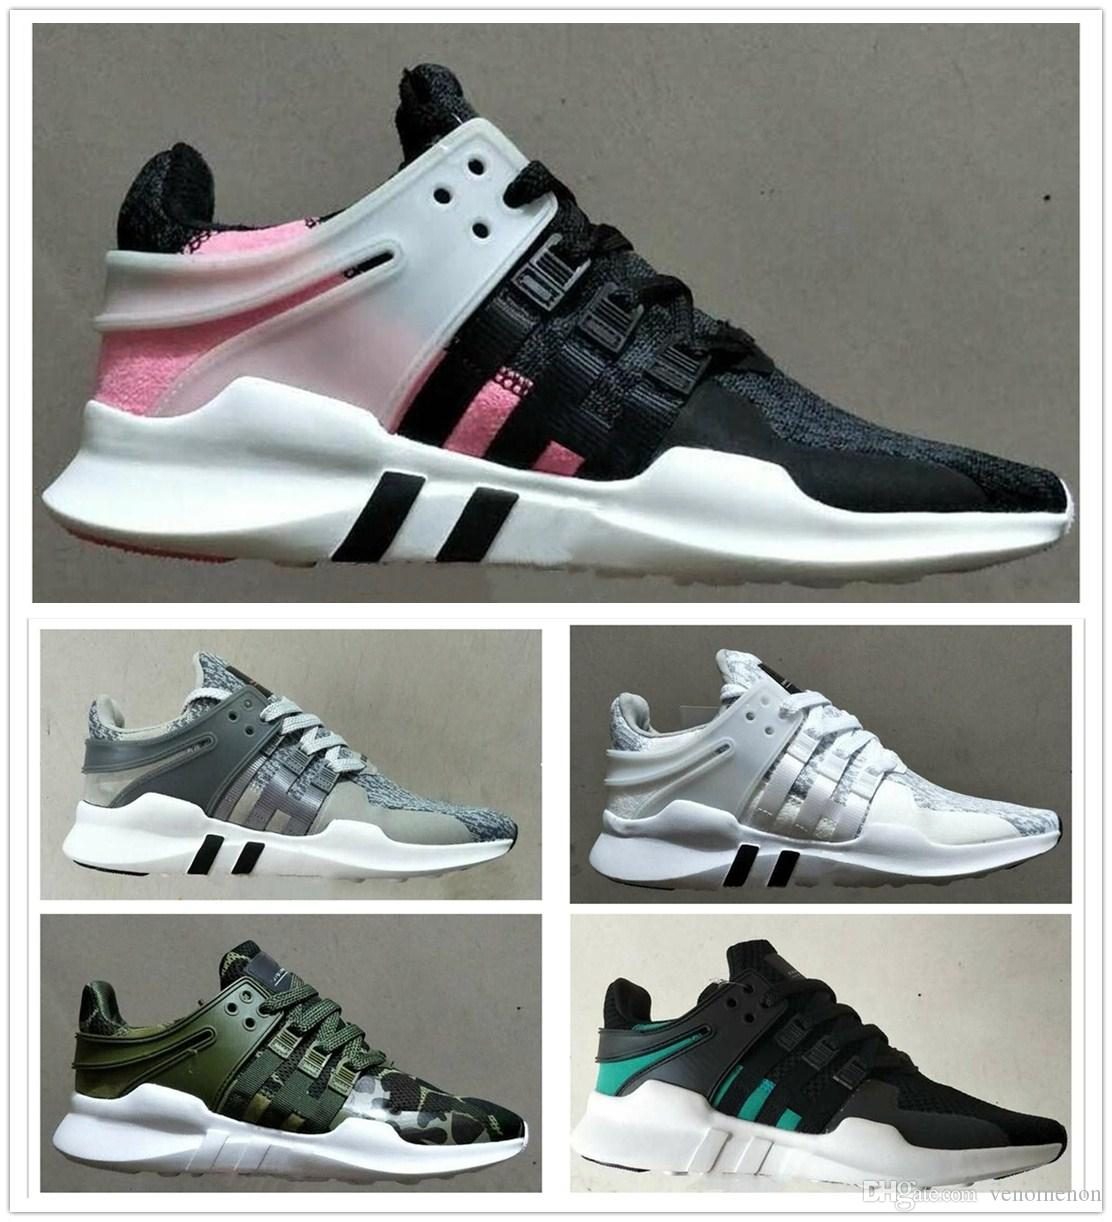 2017 Basketballs casual shoes Mens Original Mesh Breathe Black White Army green Pink Basketballs ADVS Women casual shoes 36-45 sale explore cheap buy authentic cheap extremely amazon cheap price E32GCBbG